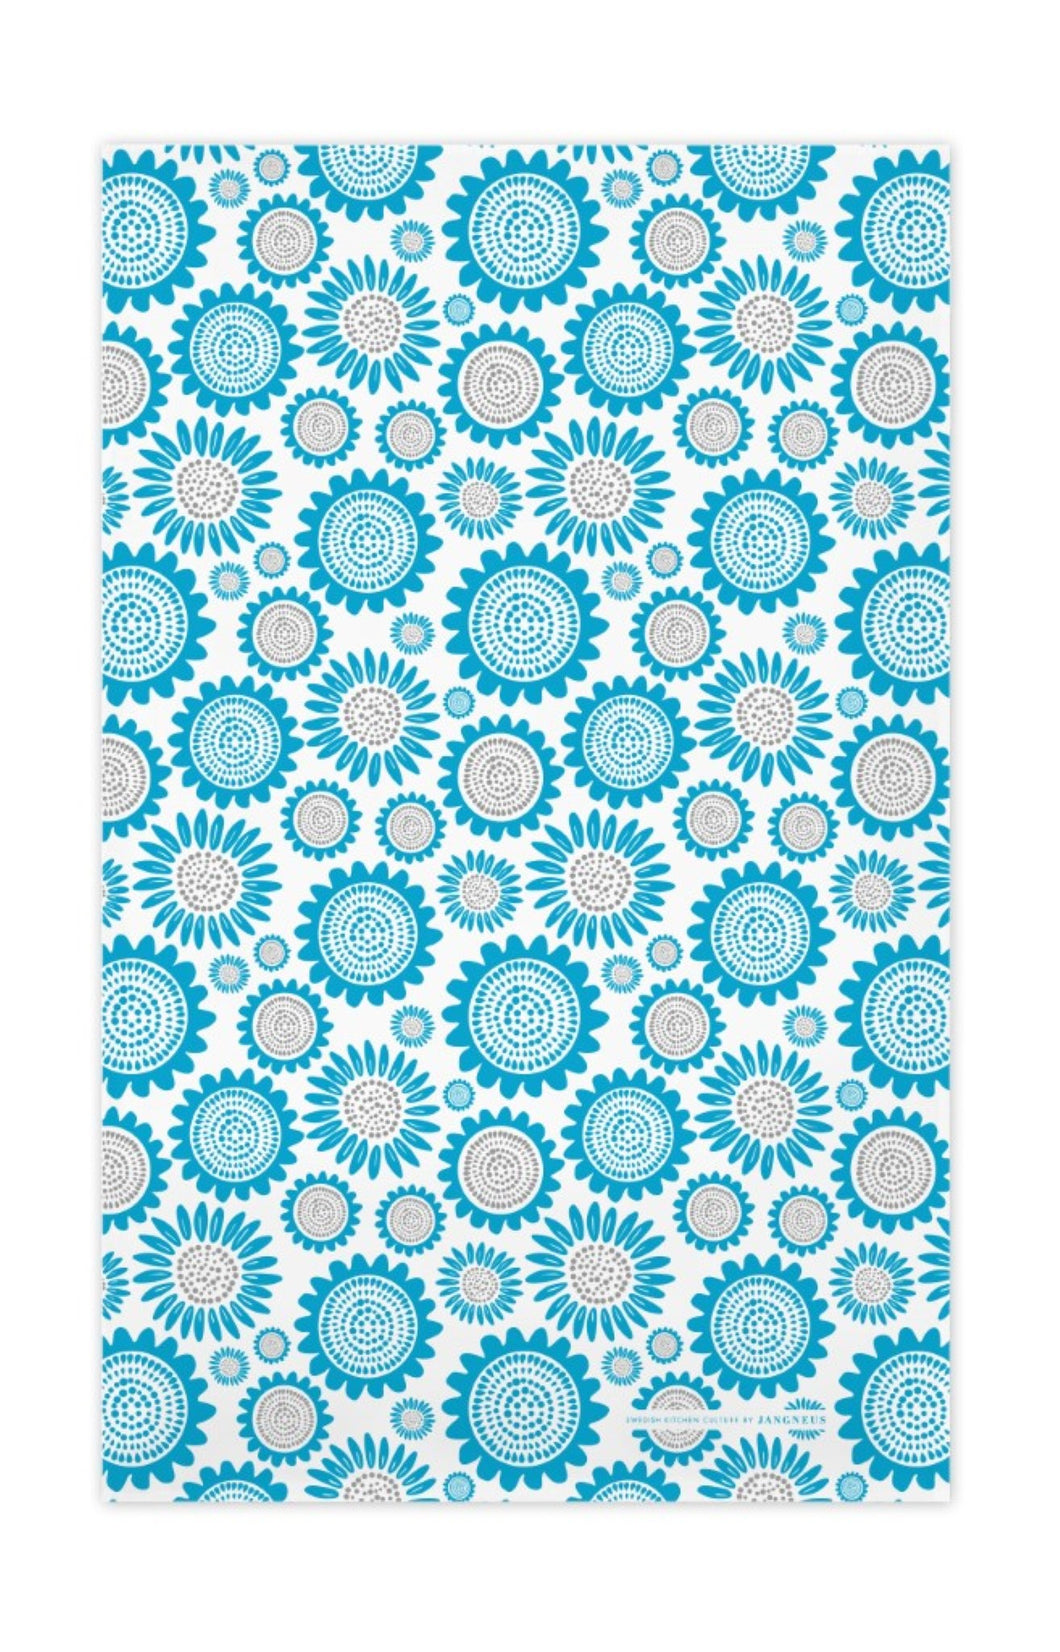 Sunflower Tea Towel - Turquoise